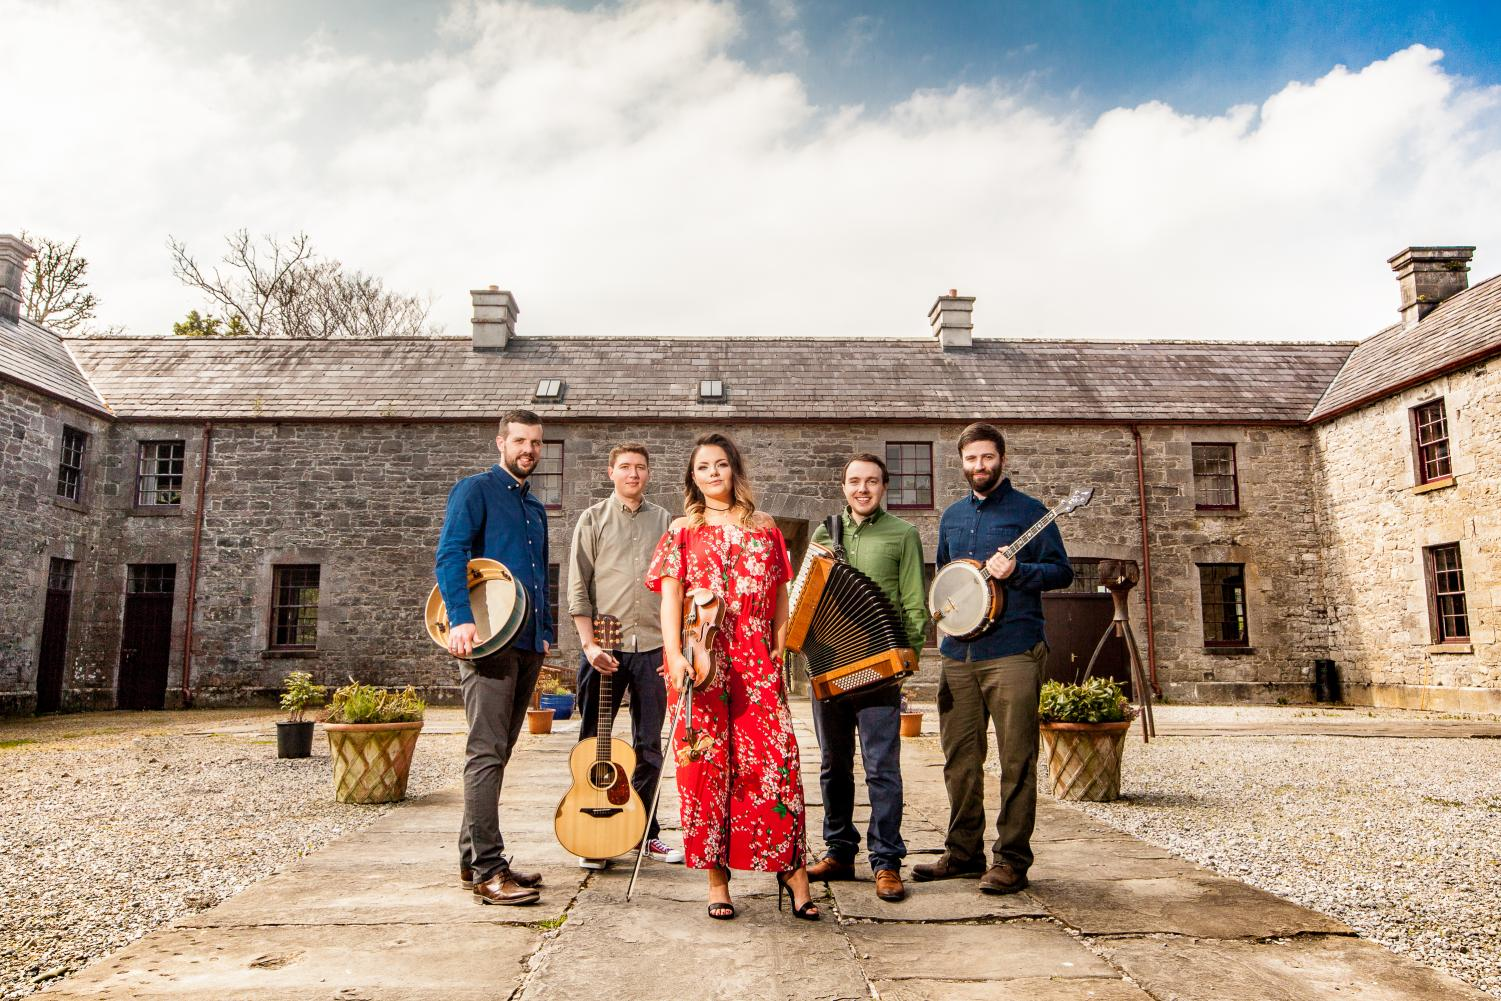 Goitse prides themselves on their ability to play traditional Irish music as well as write original compositions.